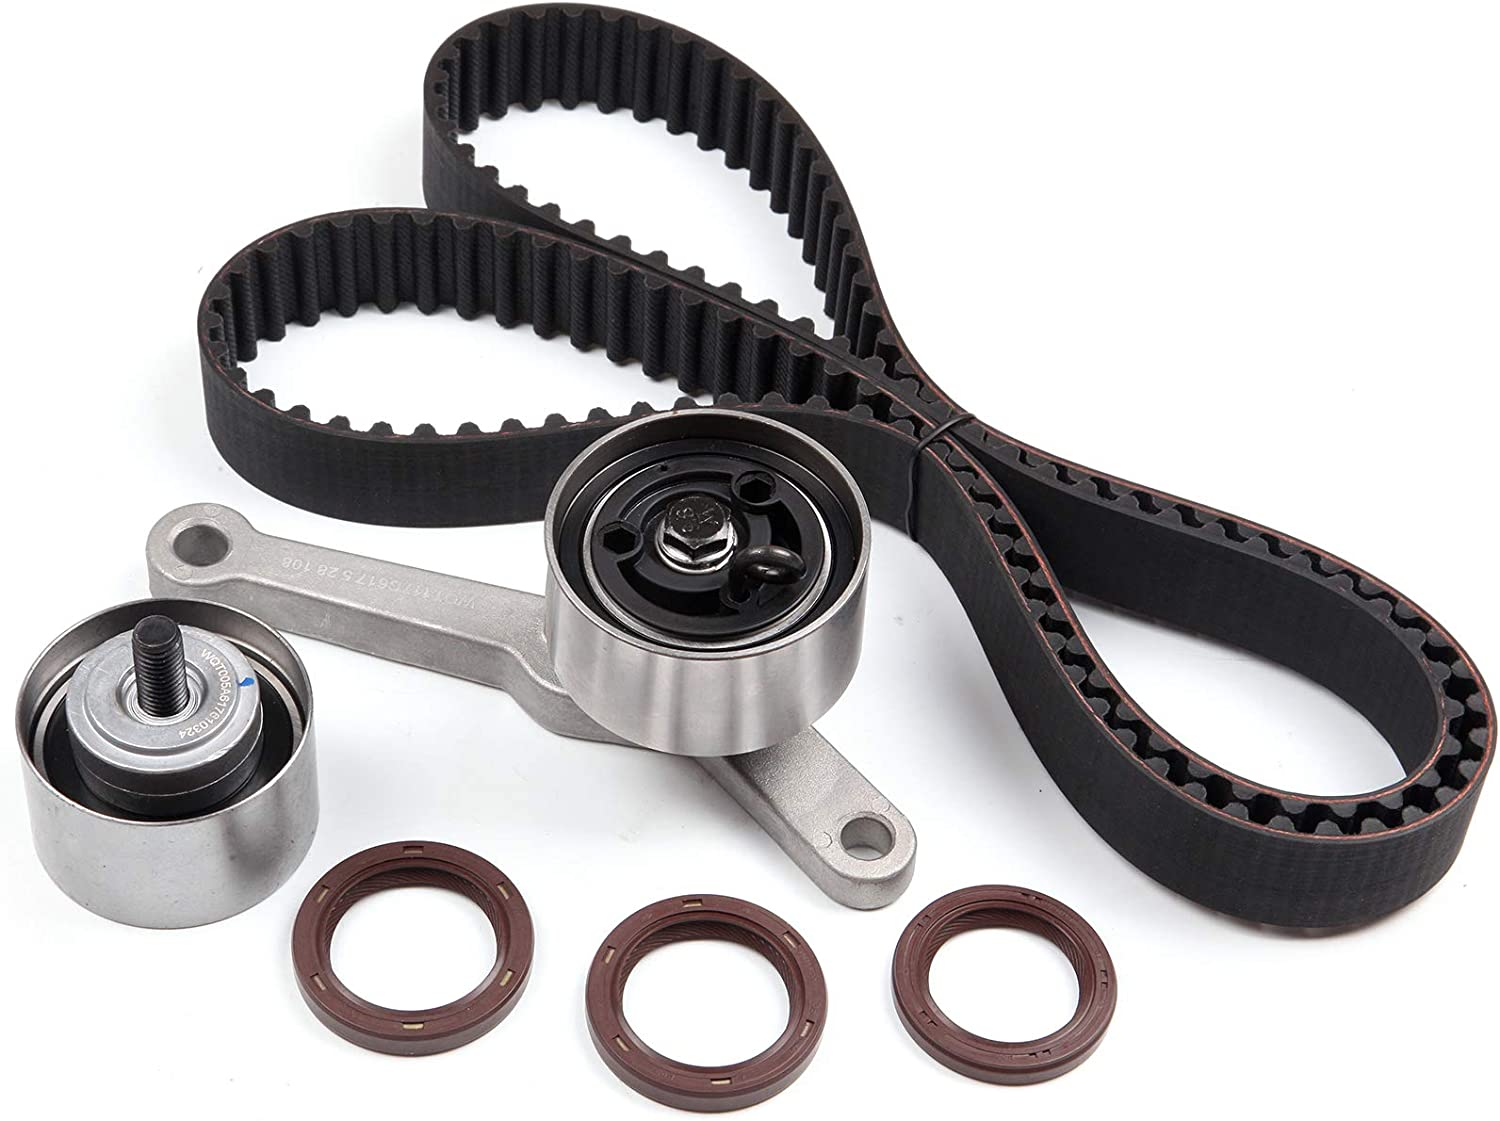 TUPARTS Timing Belt Kit Replacement for 2000 Cirrus 1995-2005 Dodge Neon 1995-2000 Dodge Stratus 1996-2000 Plymouth Breeze